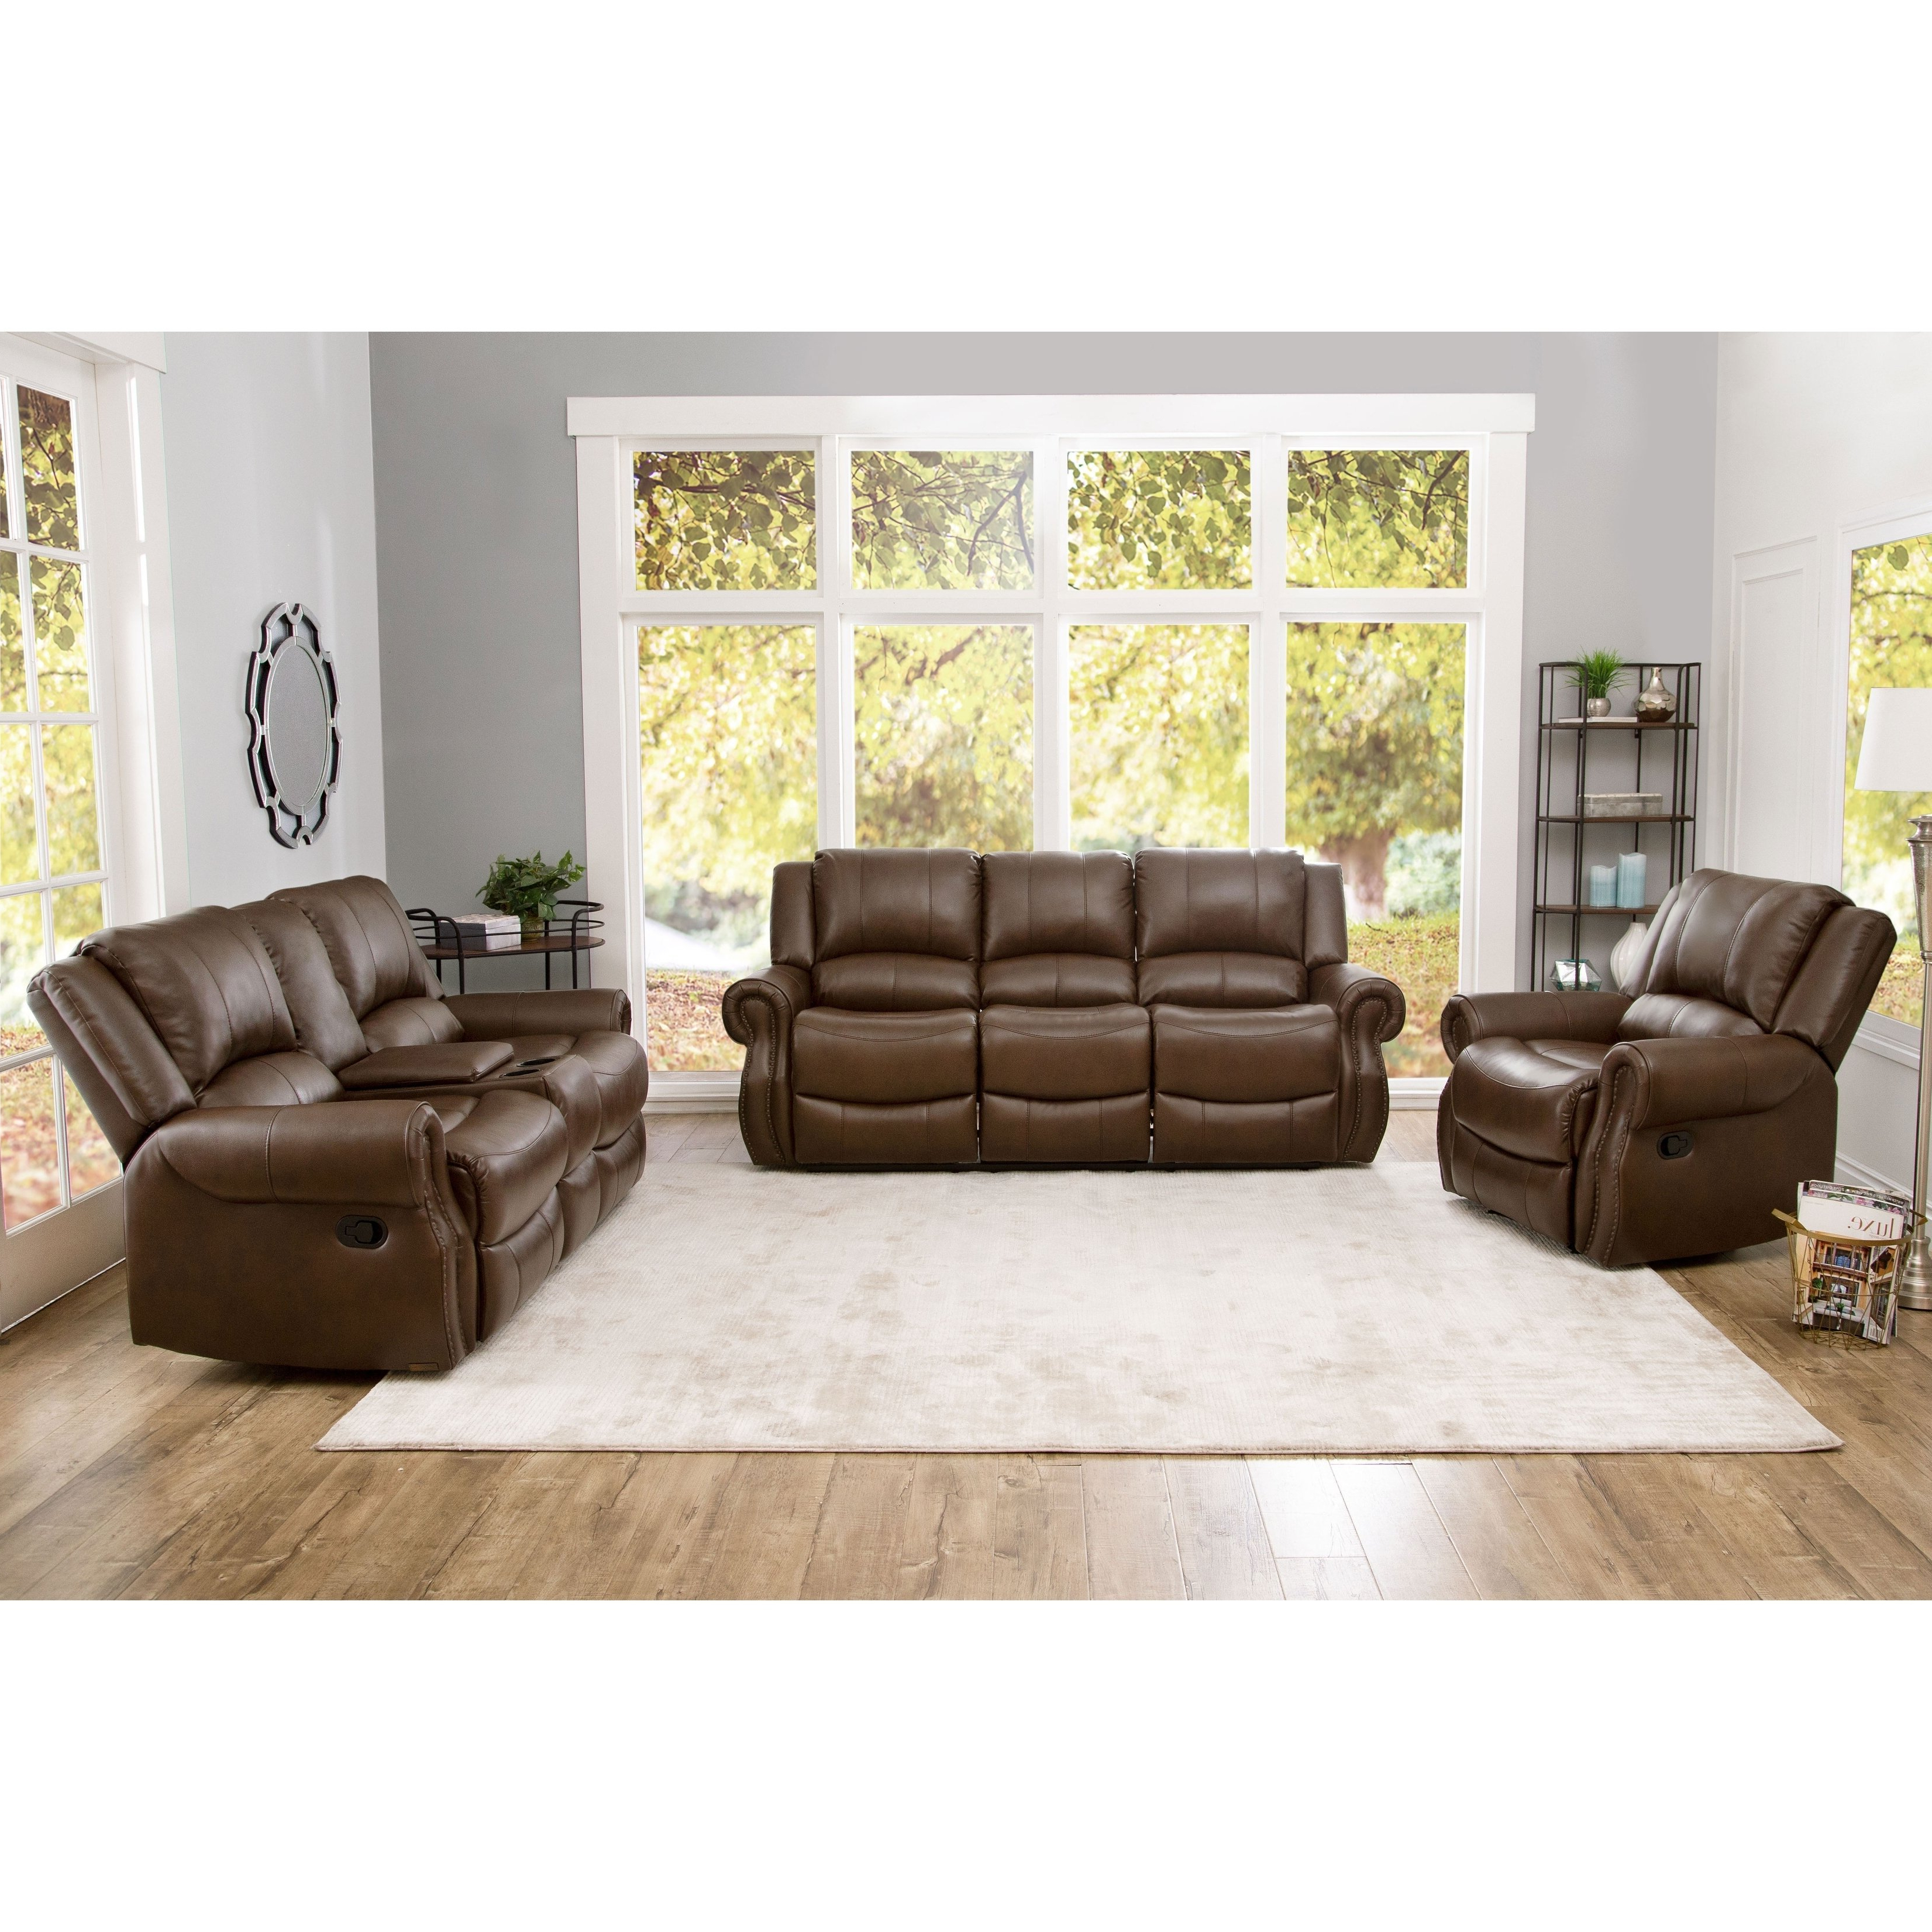 Shop Abbyson Calabasas Mesa Brown Leather 3 Piece Reclining Living With Regard To Well Known Mesa Foam Oversized Sofa Chairs (View 17 of 20)